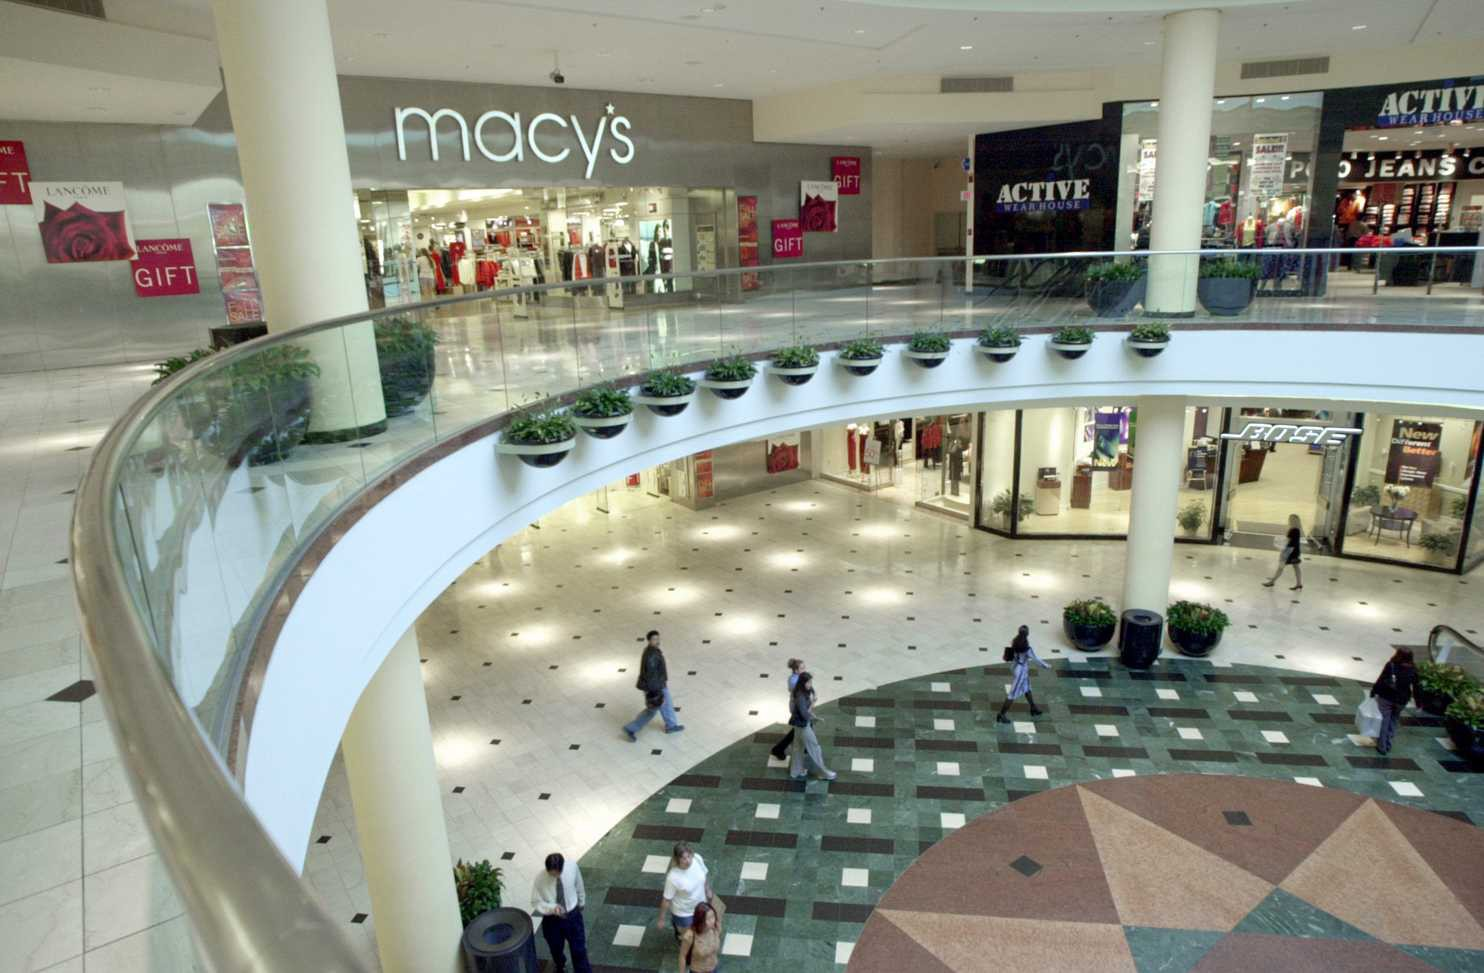 Can artificial intelligence help you find an outfit? Macy's is giving it a try.